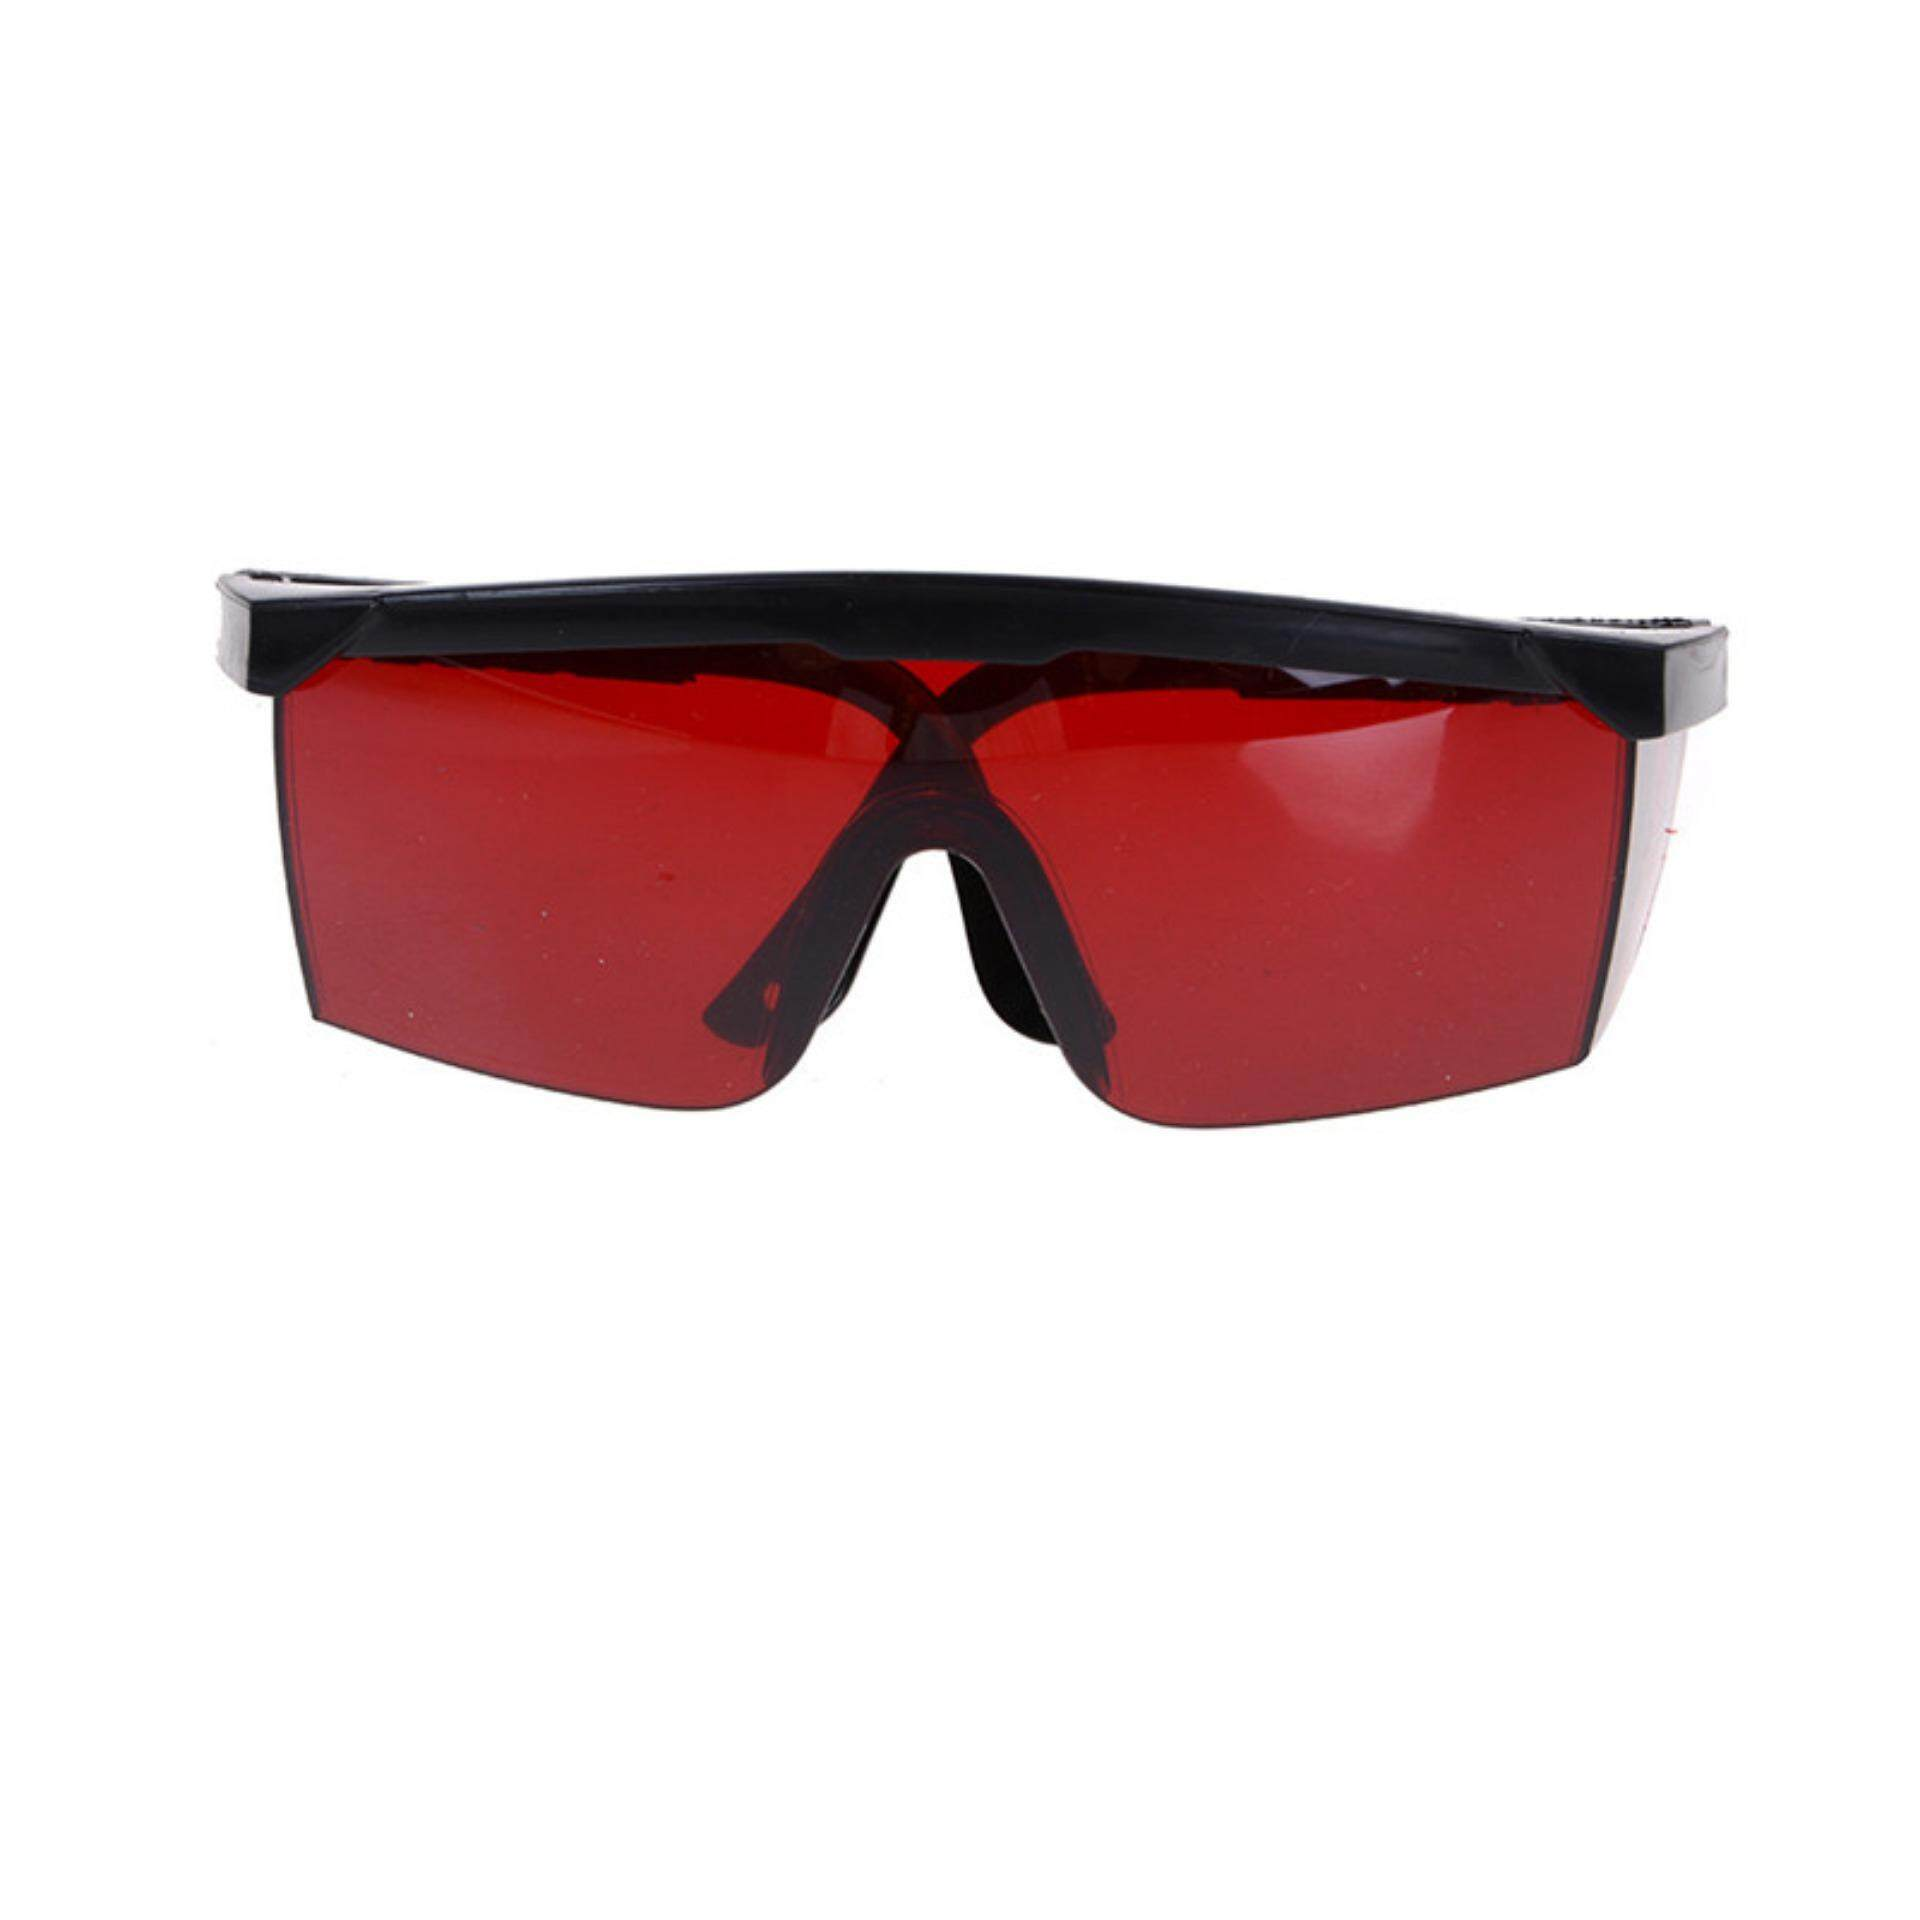 Sky Wing Red Eye Spectacles Protective Eyewear Protection Goggles Laser Safety Glasse